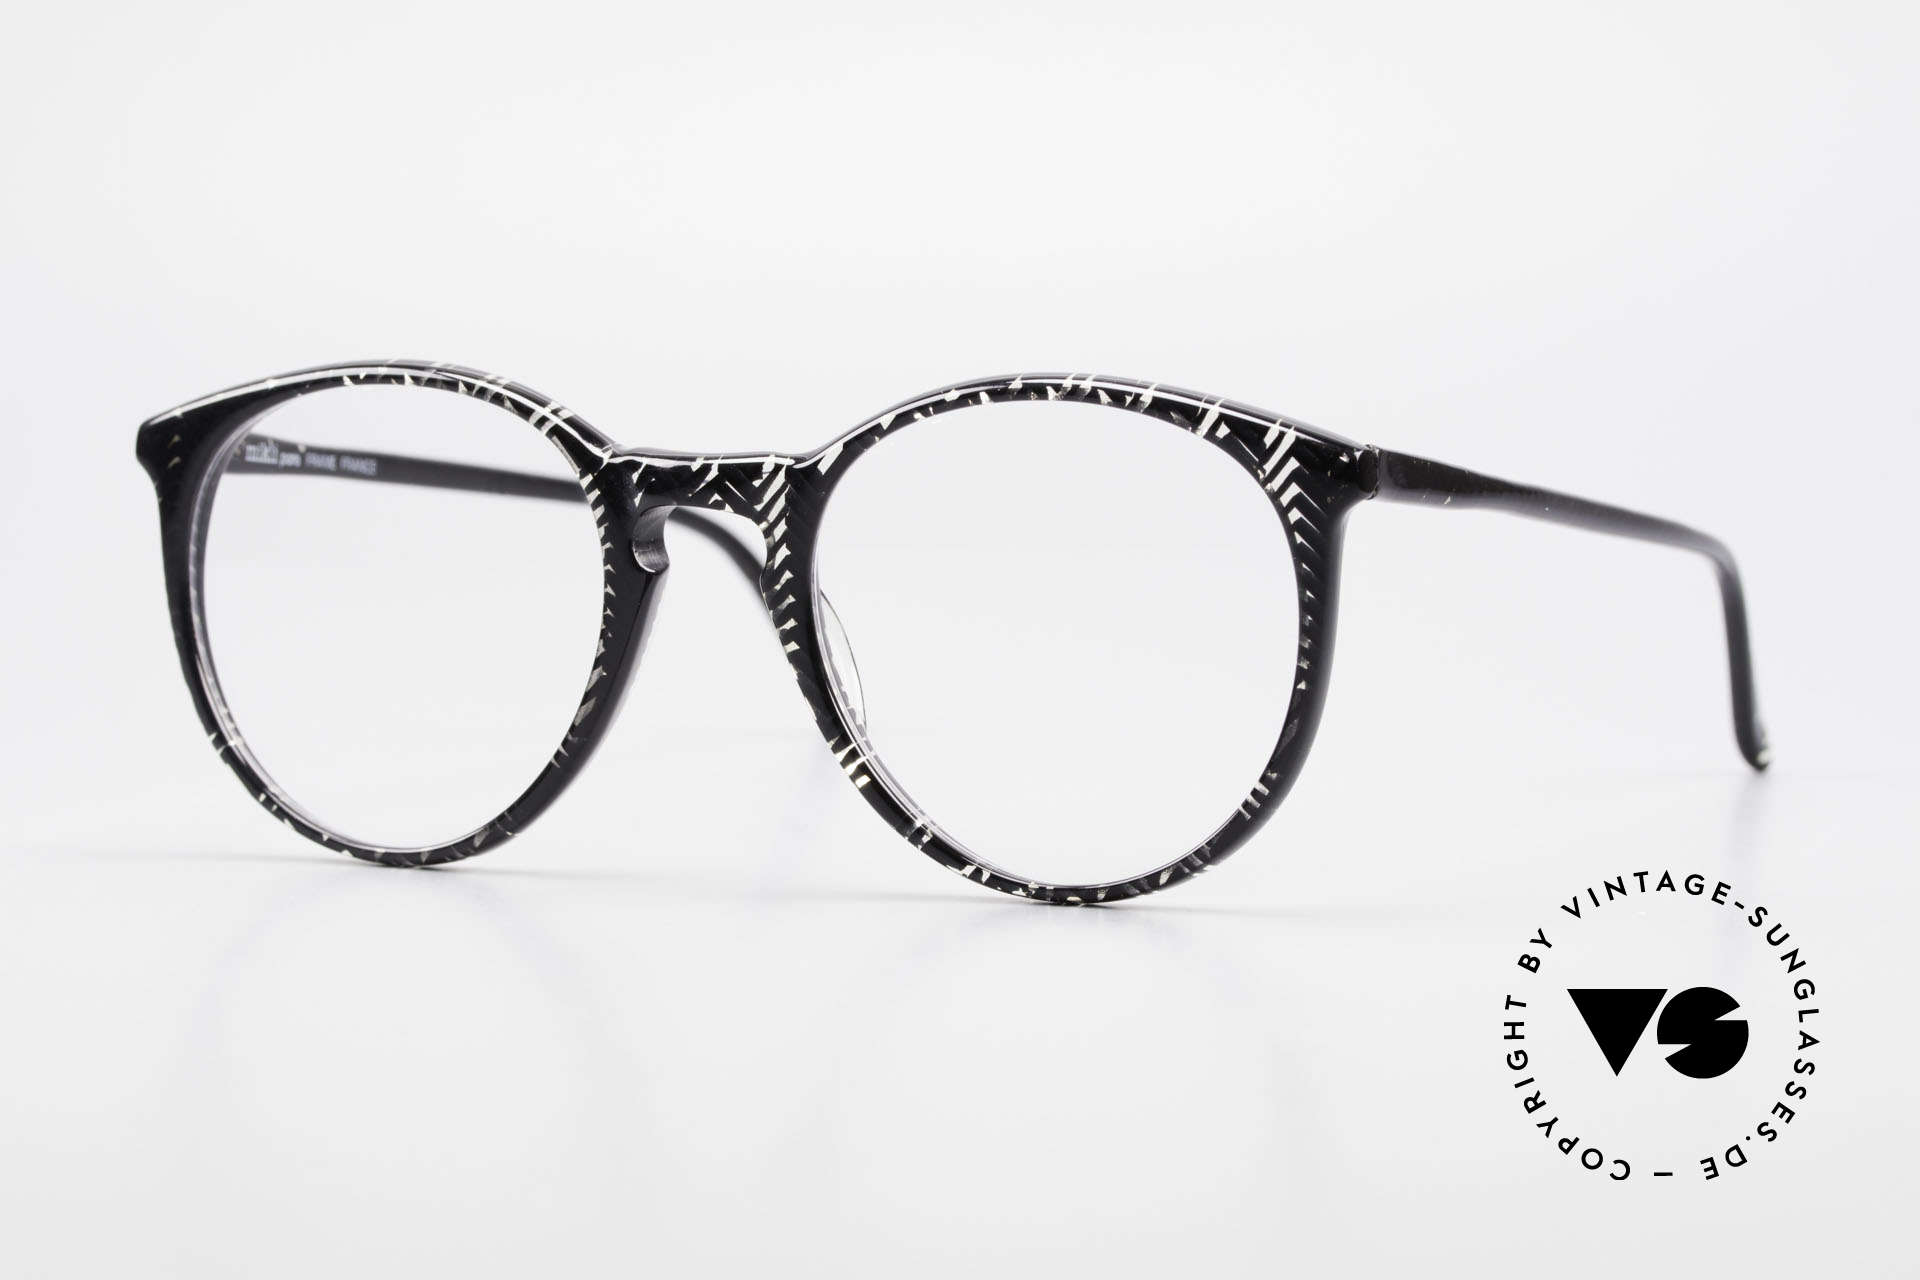 Alain Mikli 901 / 299 Panto Frame Black Crystal, elegant VINTAGE Alain Mikli designer eyeglasses, Made for Men and Women